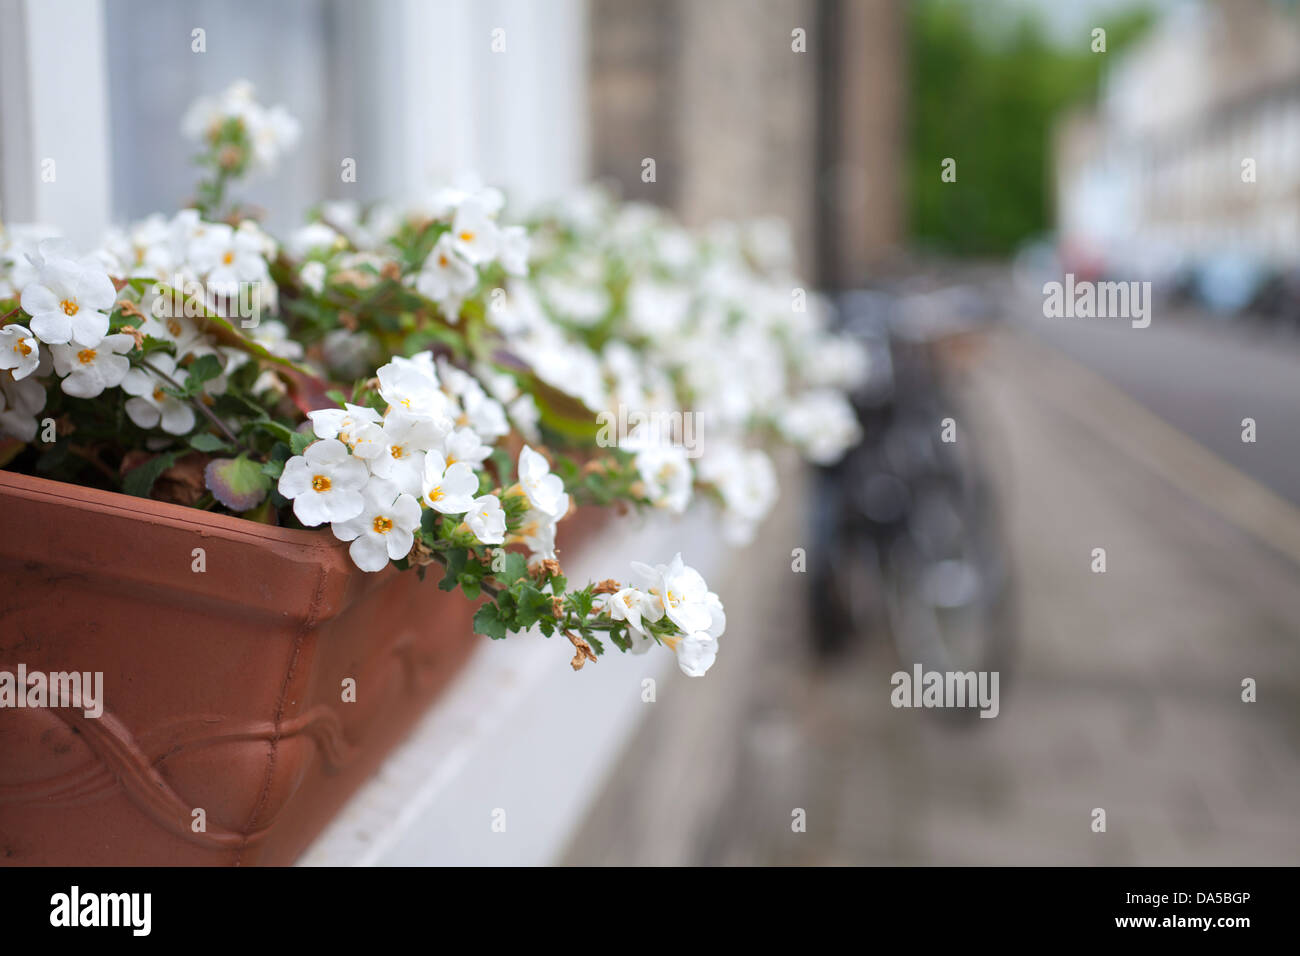 White flowers in window box on Victoria Street Cambridge - Stock Image